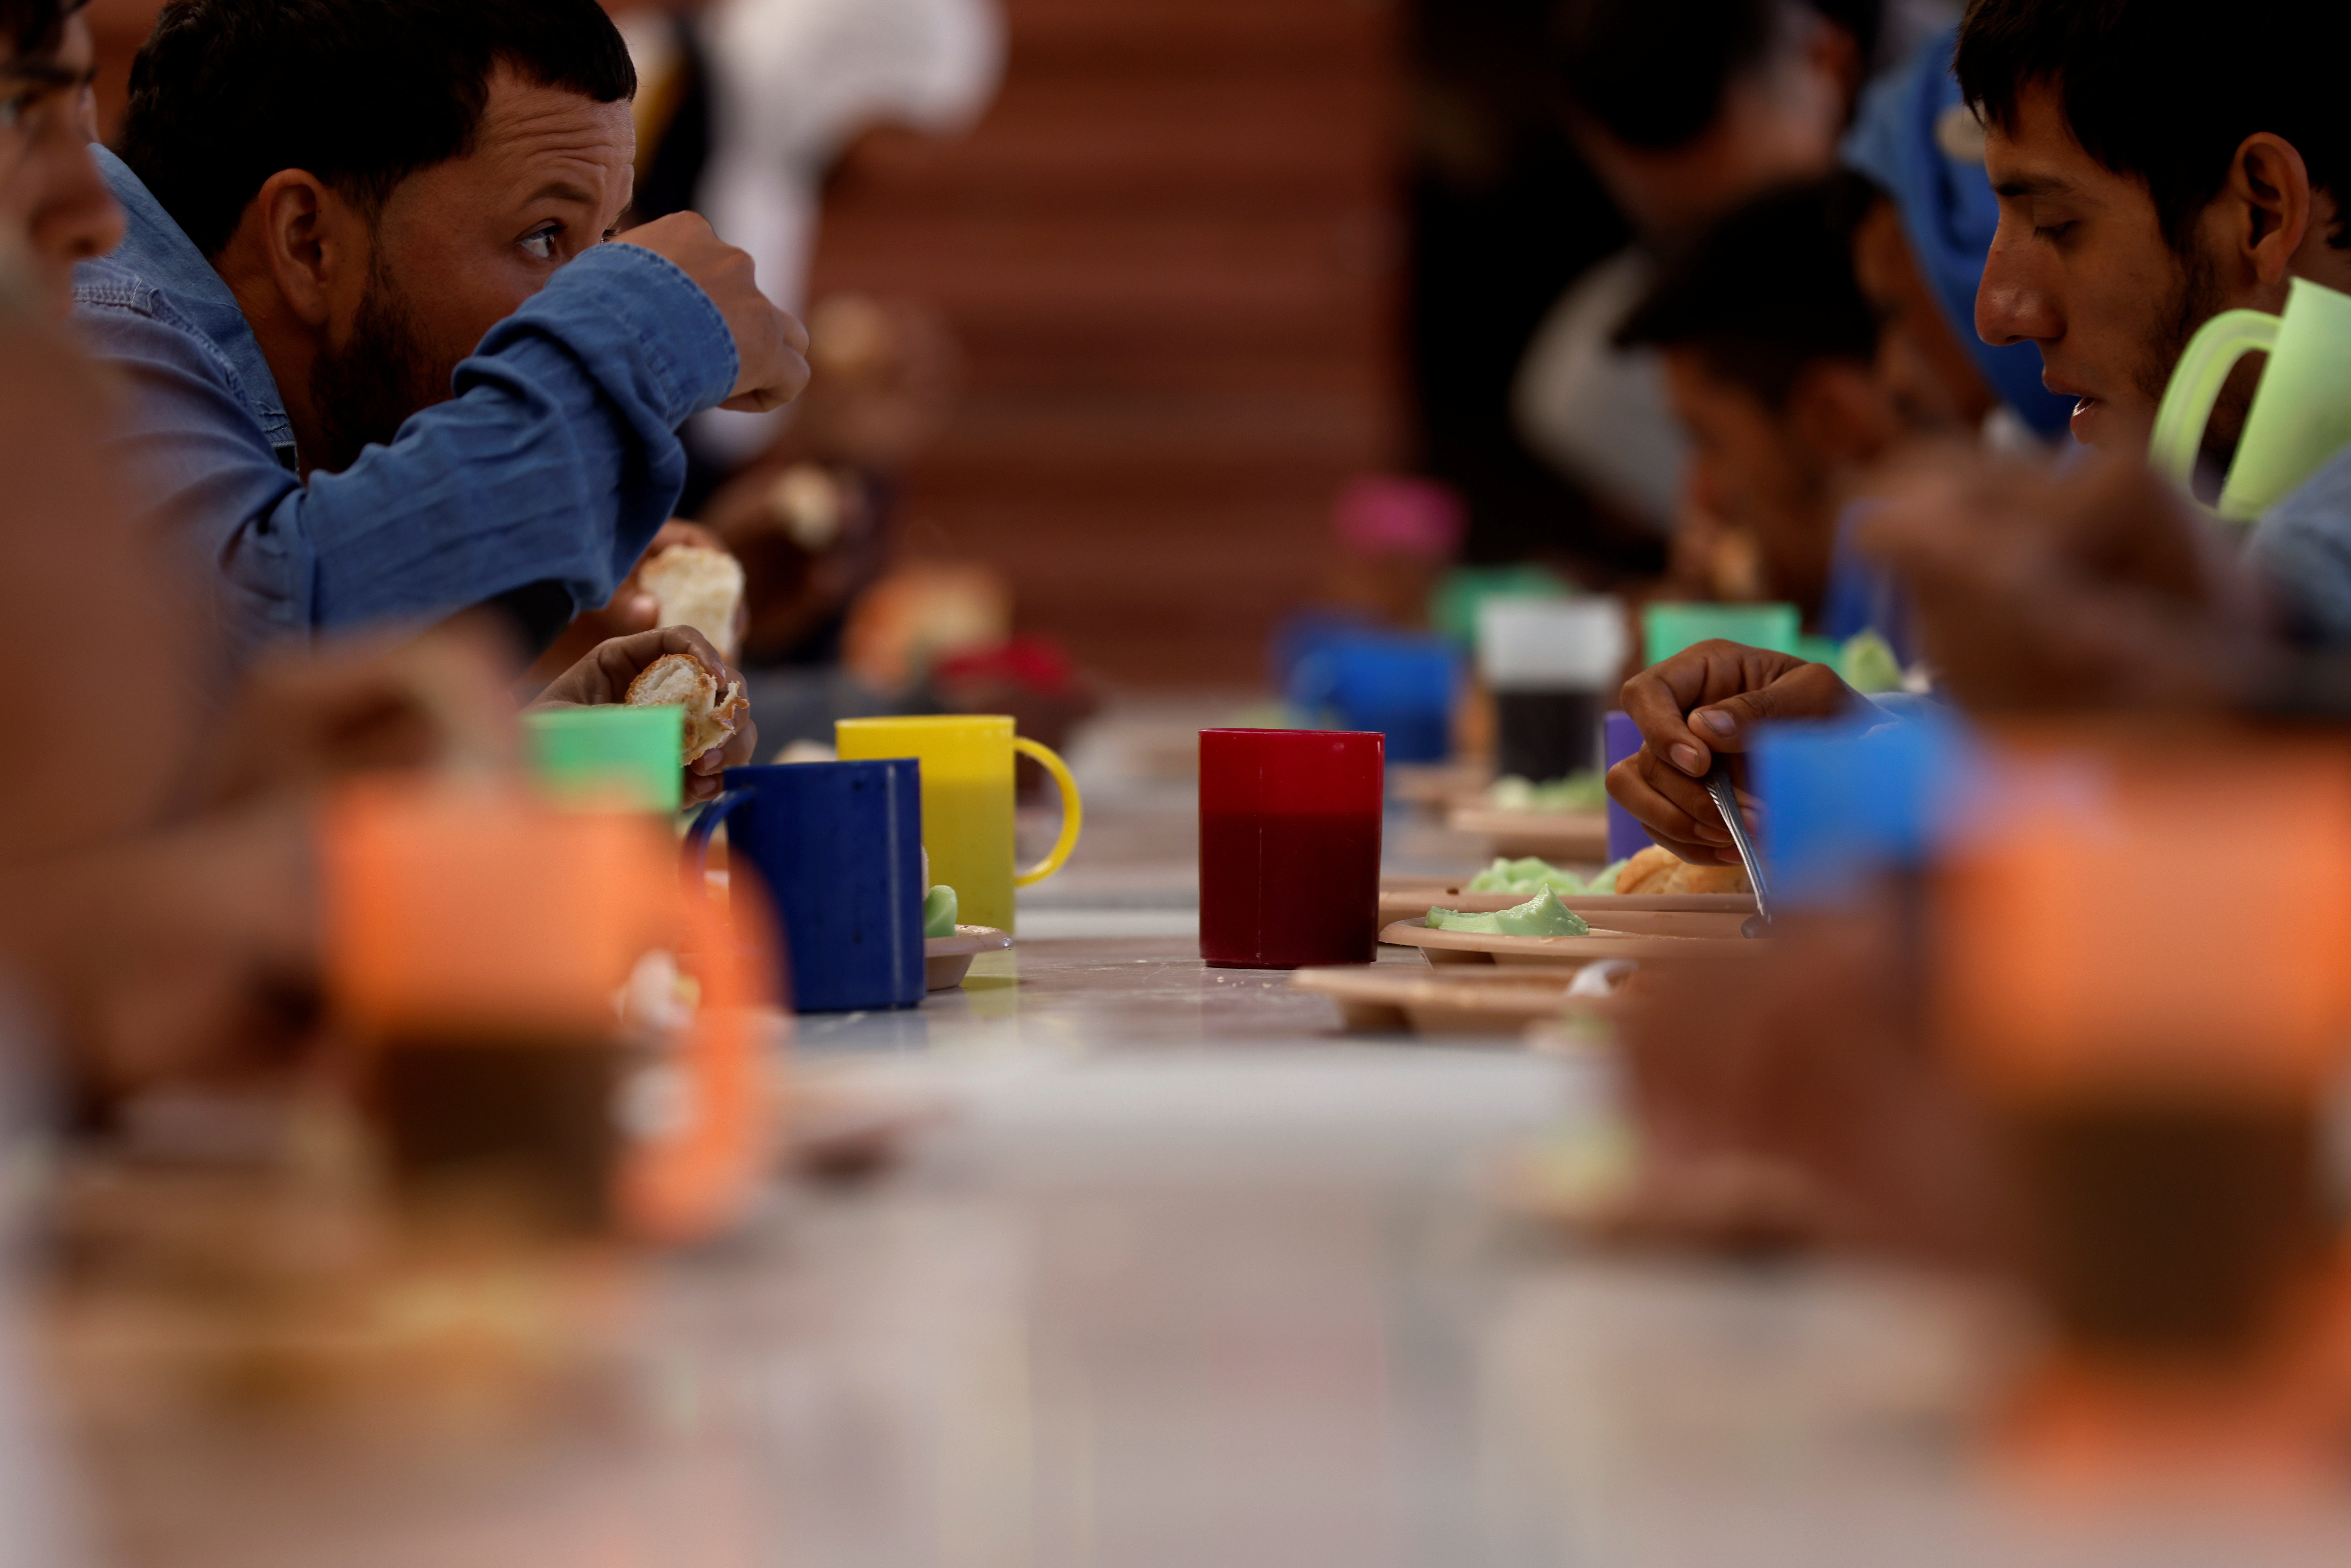 """Central American migrants eat donated food inside the """"Sacred Family"""" shelter as they make the perilous journey north to the United States, in Apizaco, Tlaxcala, Mexico April 16, 2021. Picture taken April 16, 2021."""